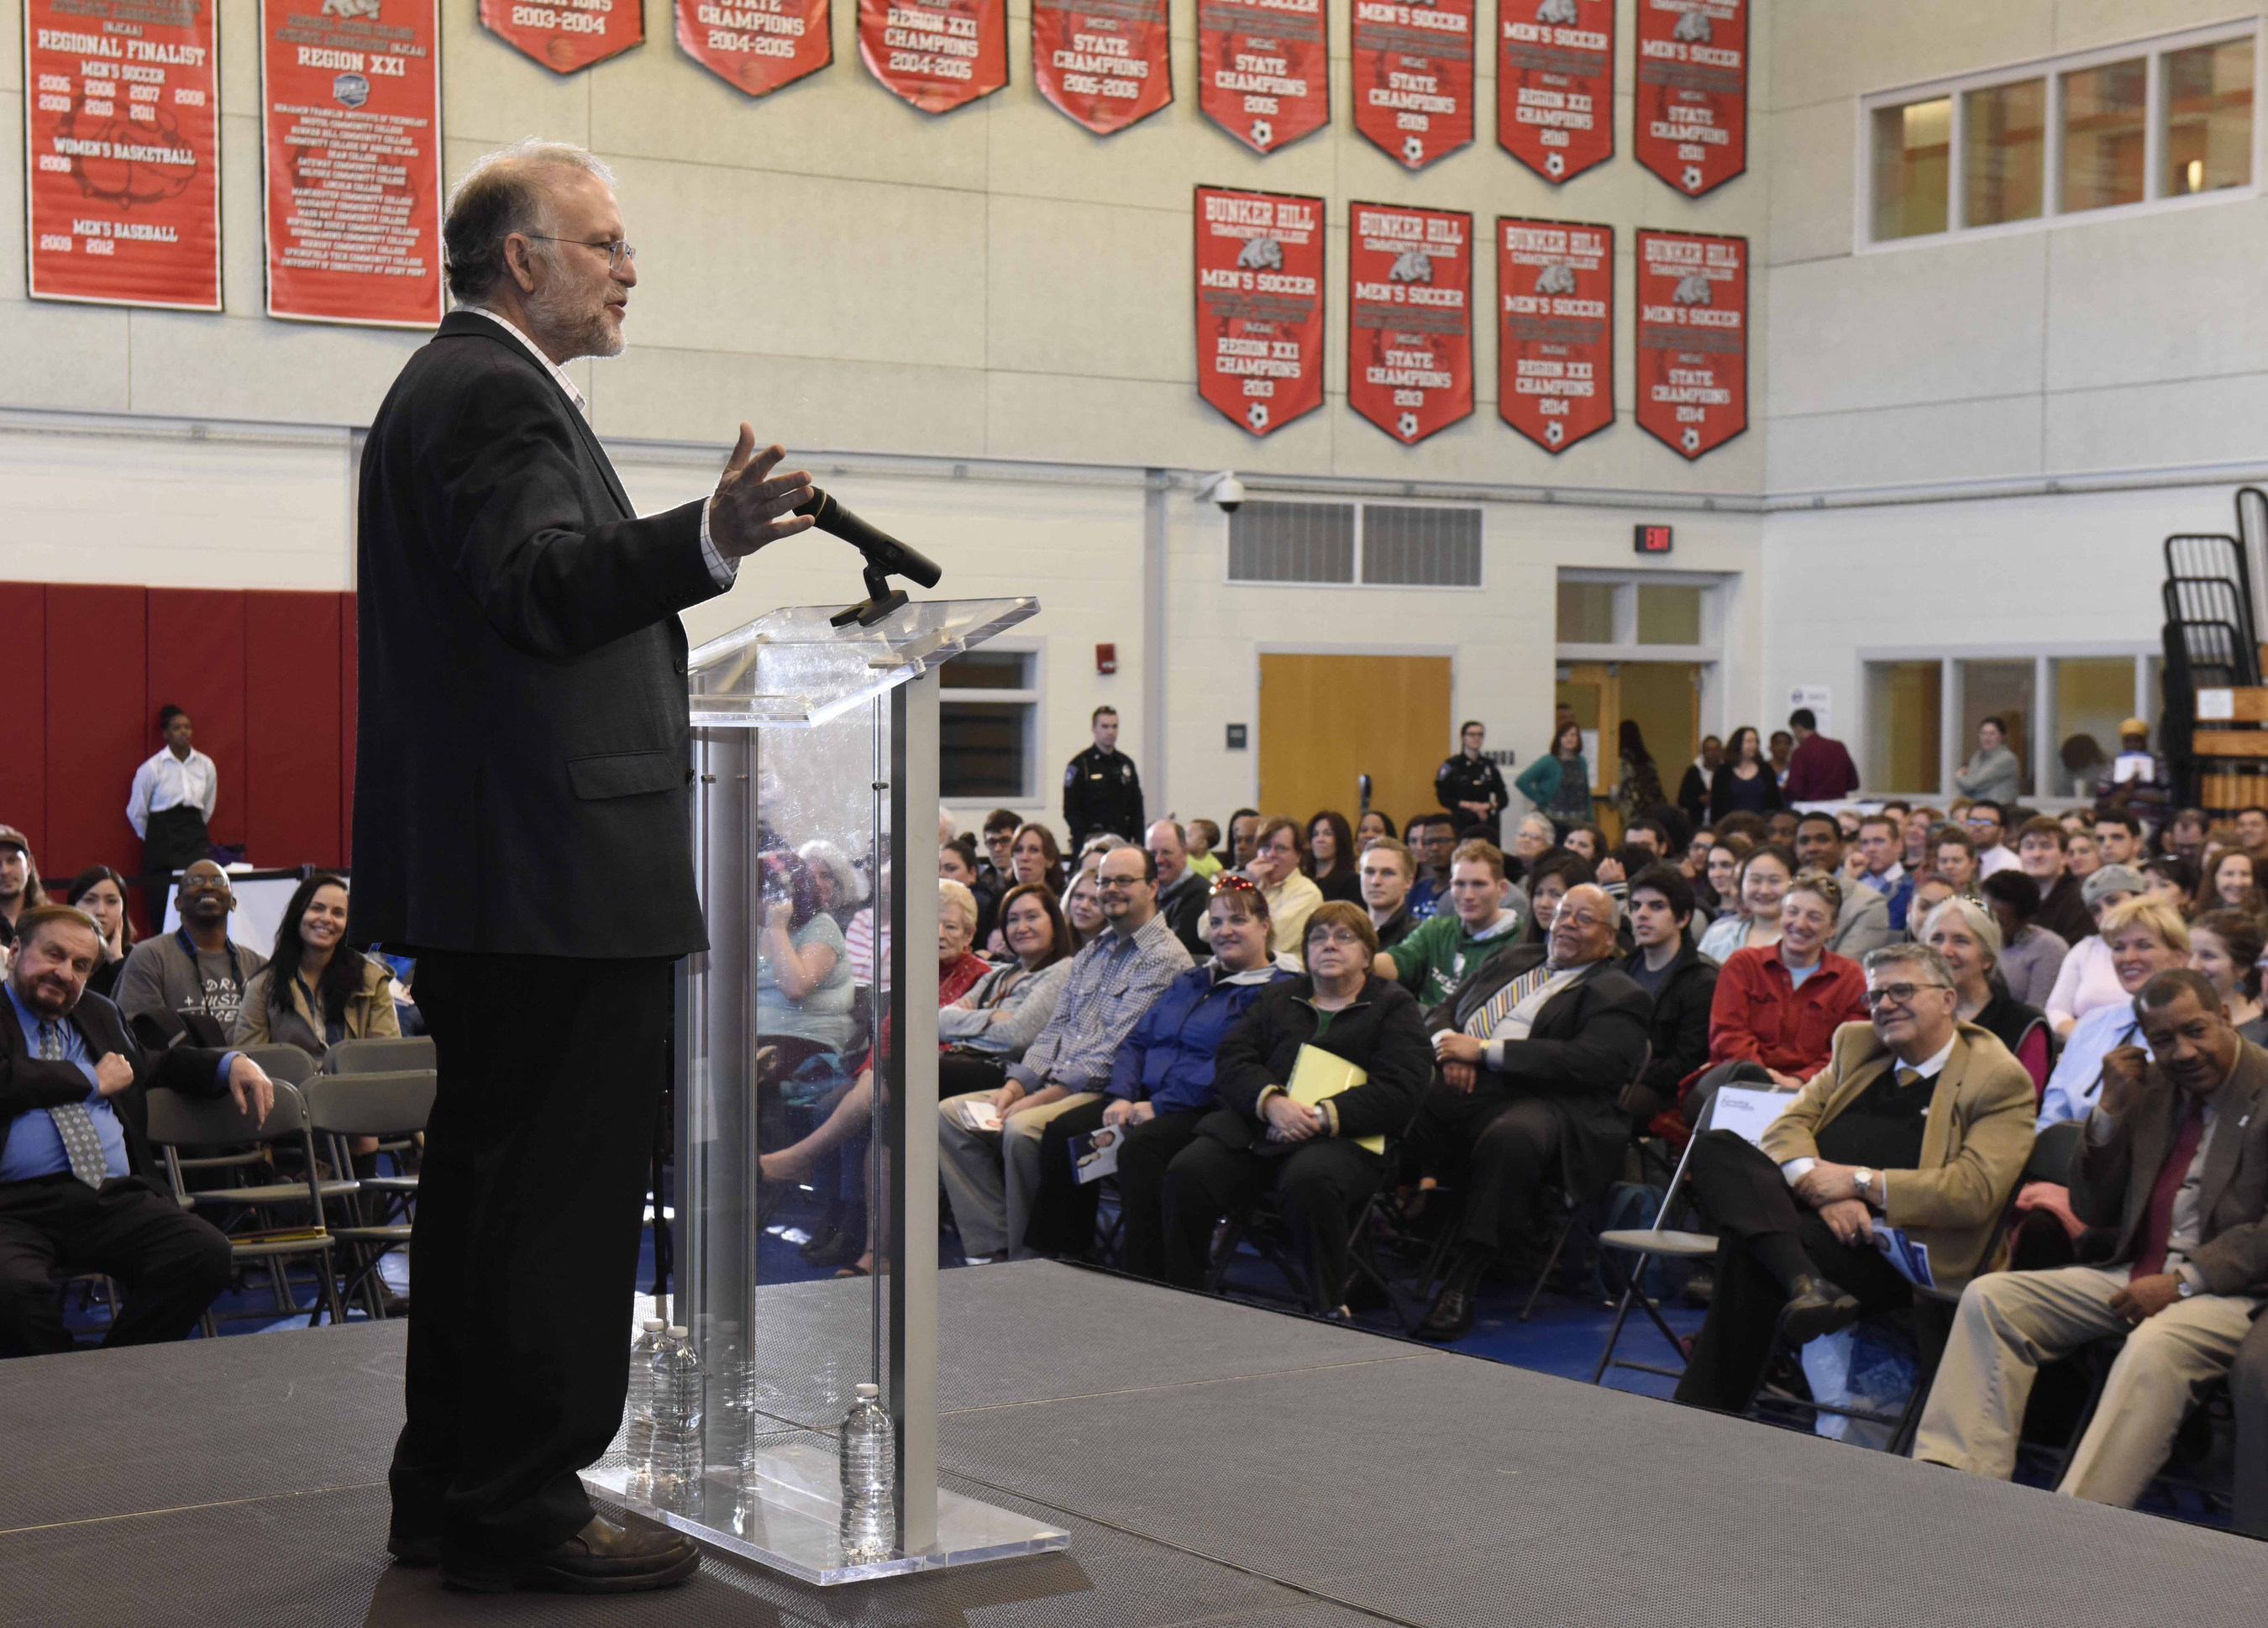 Jerry Greenfield, co-founder of Ben & Jerry's Homemade, Inc., addressing the audience at Bunker Hill Community College.